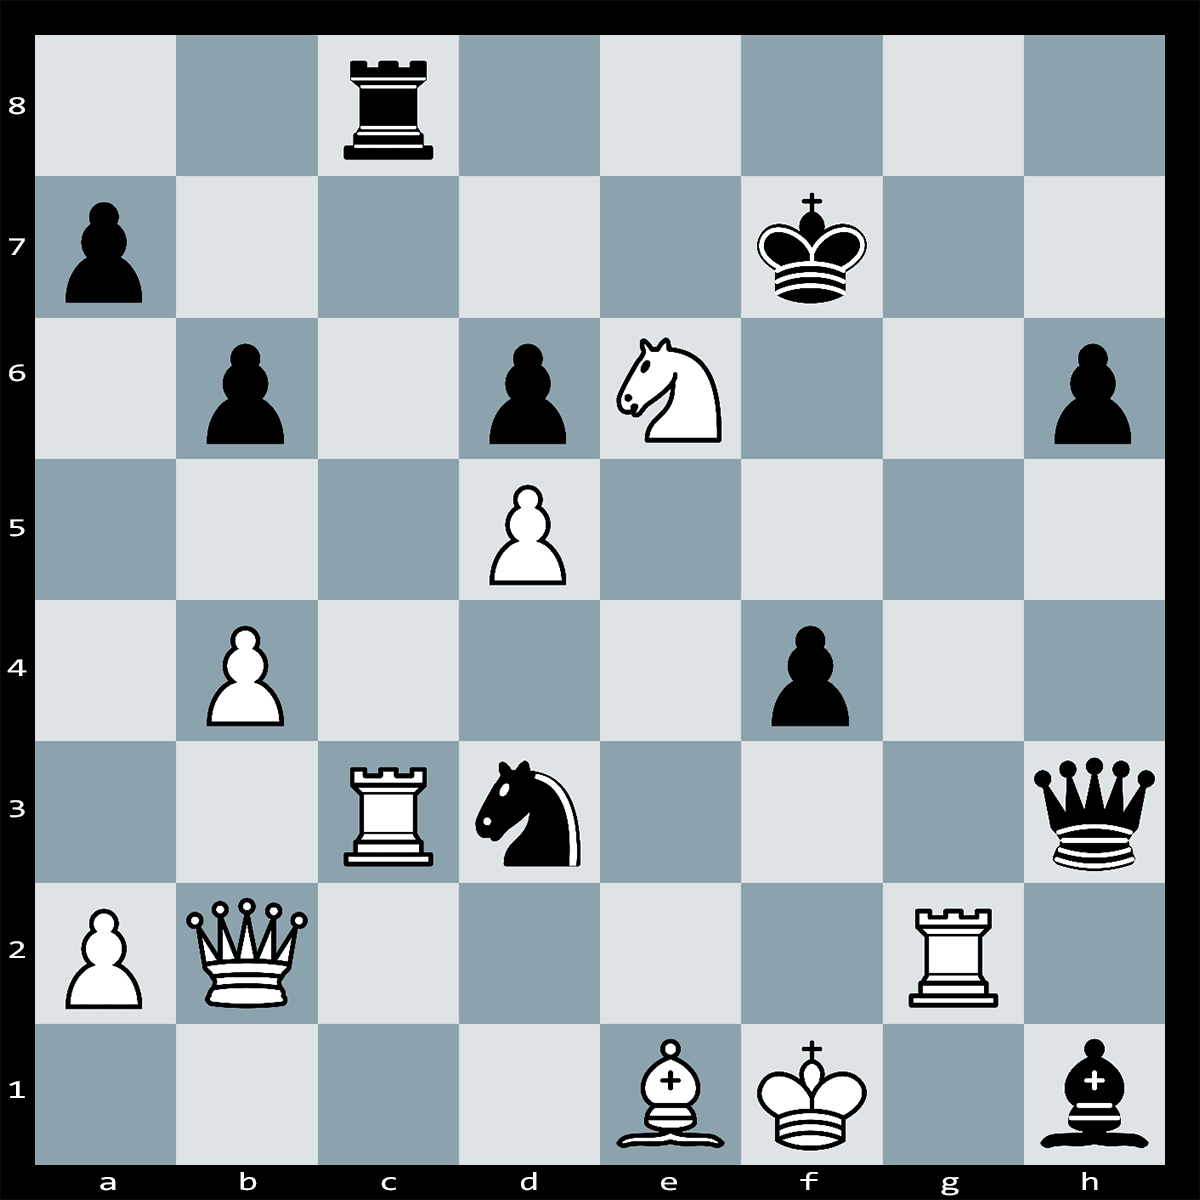 Chess Puzzle #277 | White has a winning position, but what is the key move to achieve victory in 4 moves.